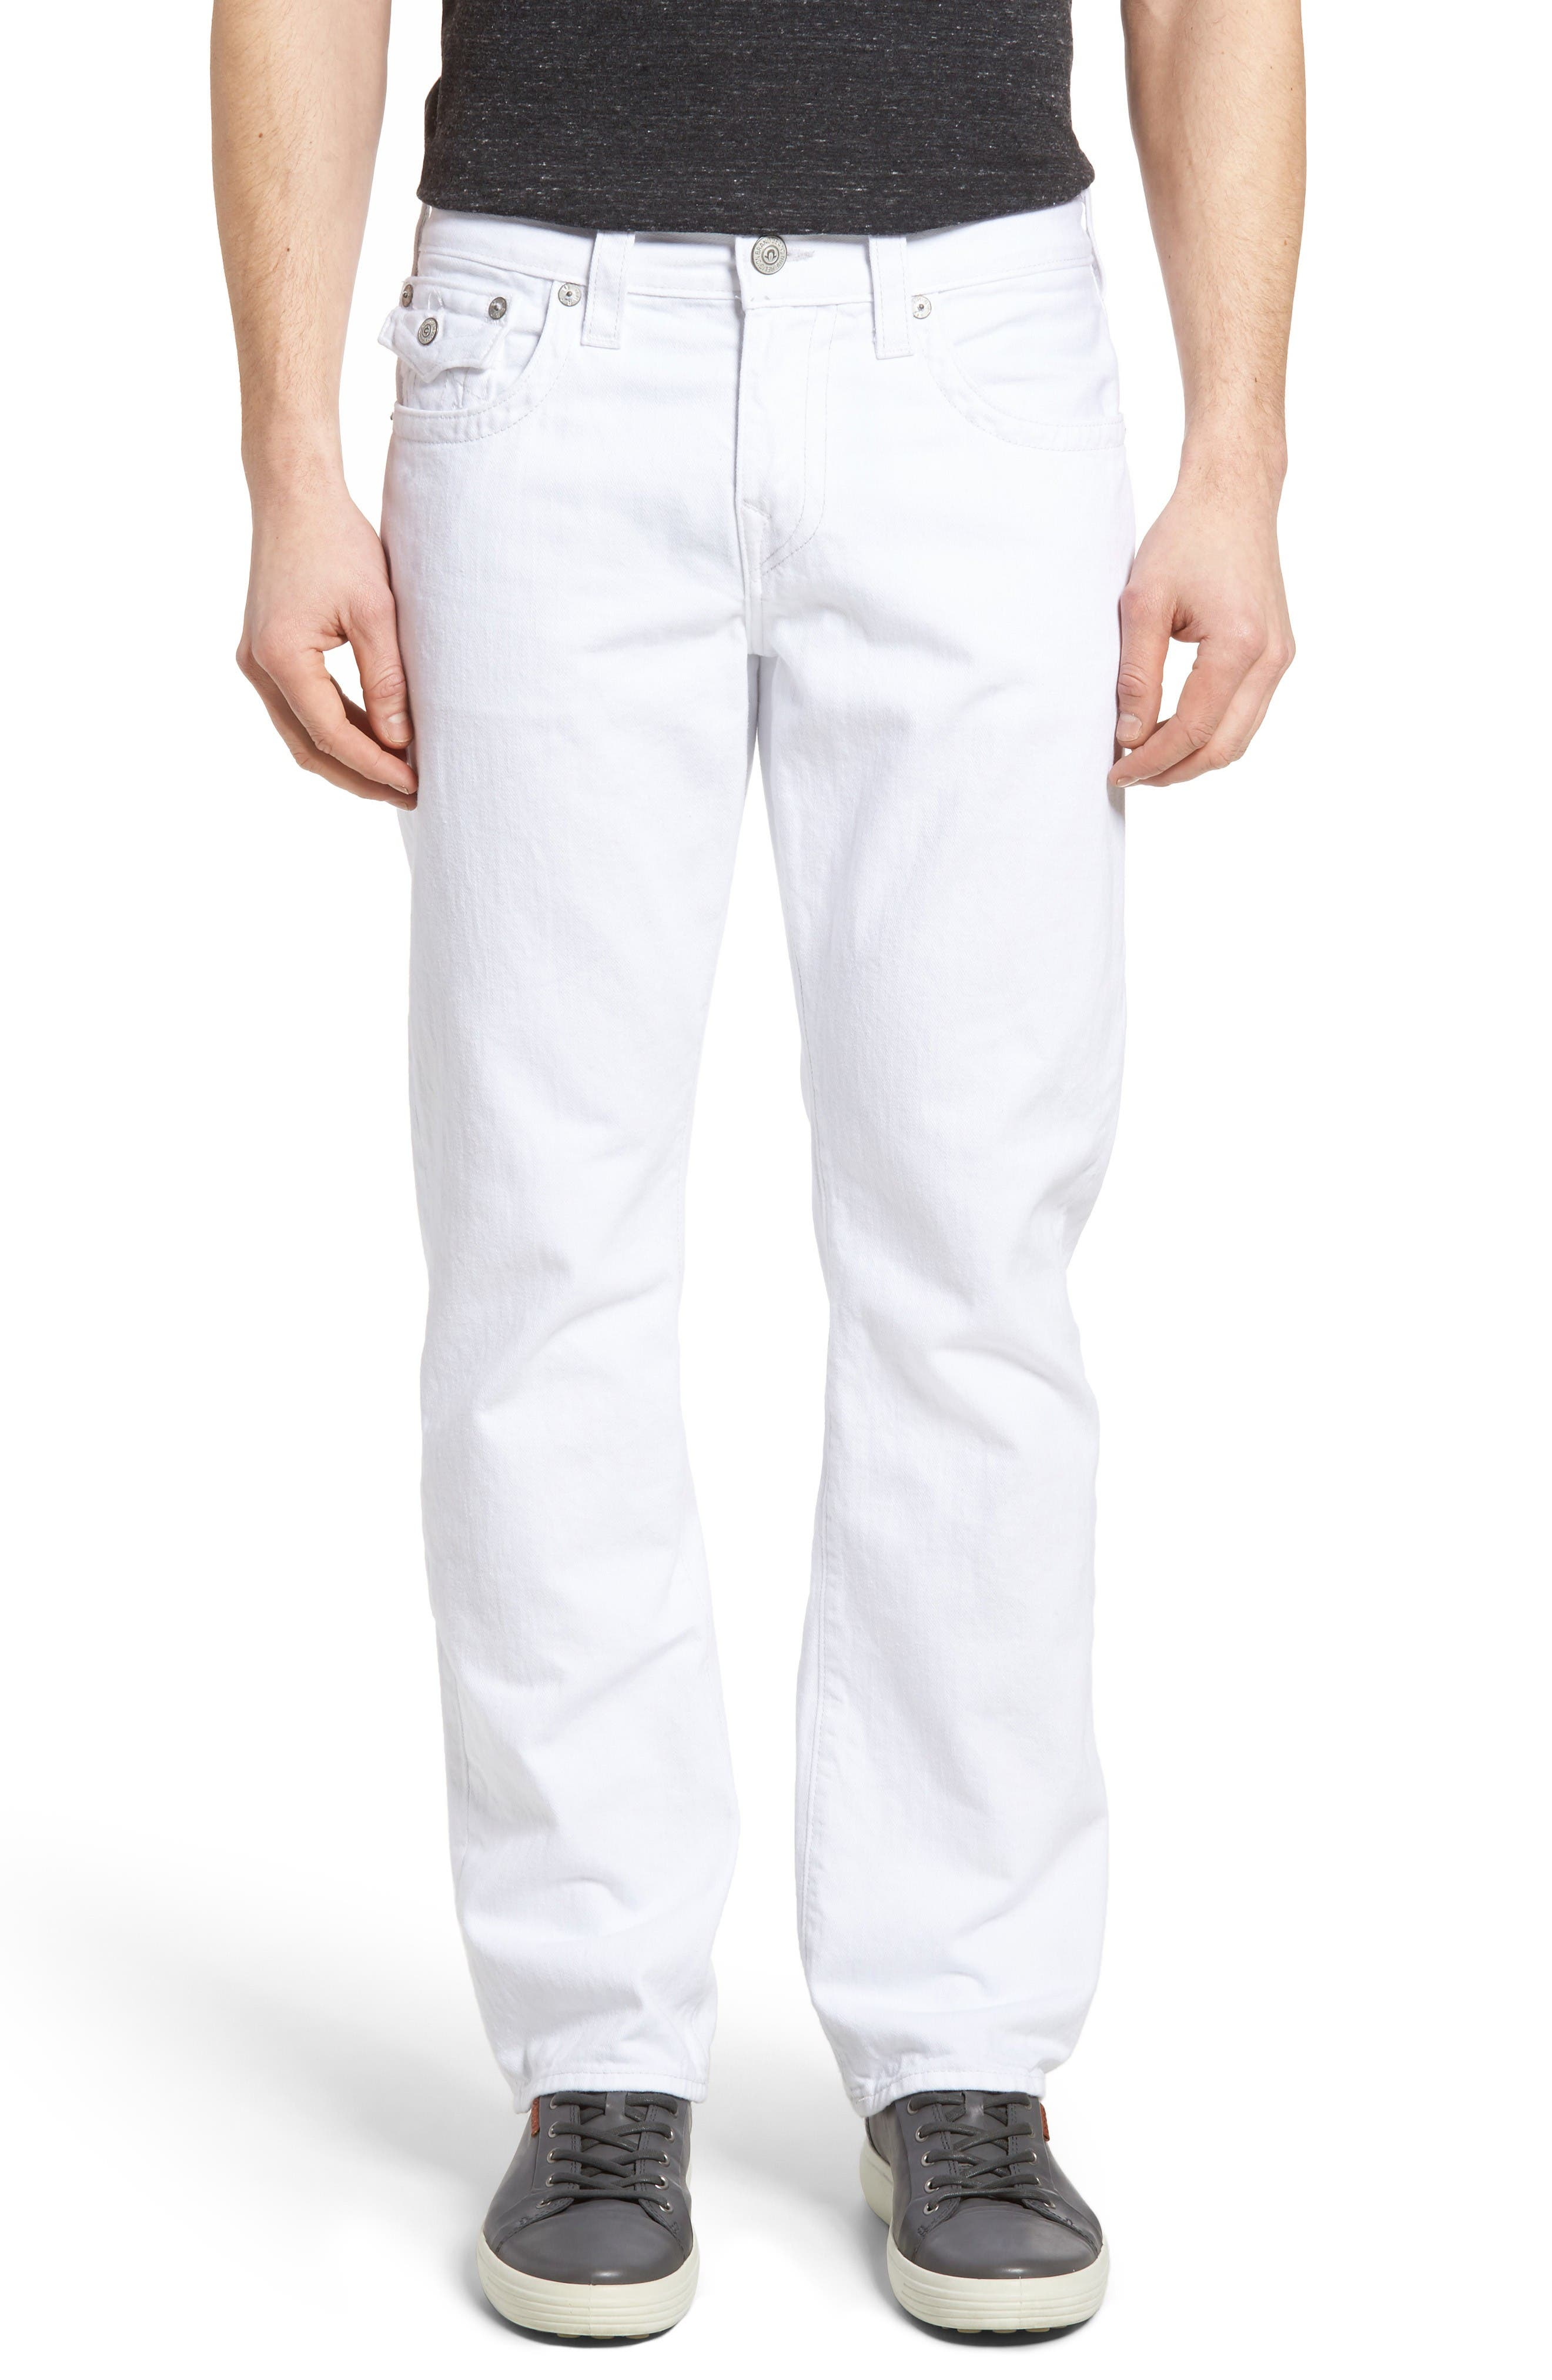 Alternate Image 1 Selected - True Religion Brand Jeans Ricky Relaxed Fit Jeans (Optic White)